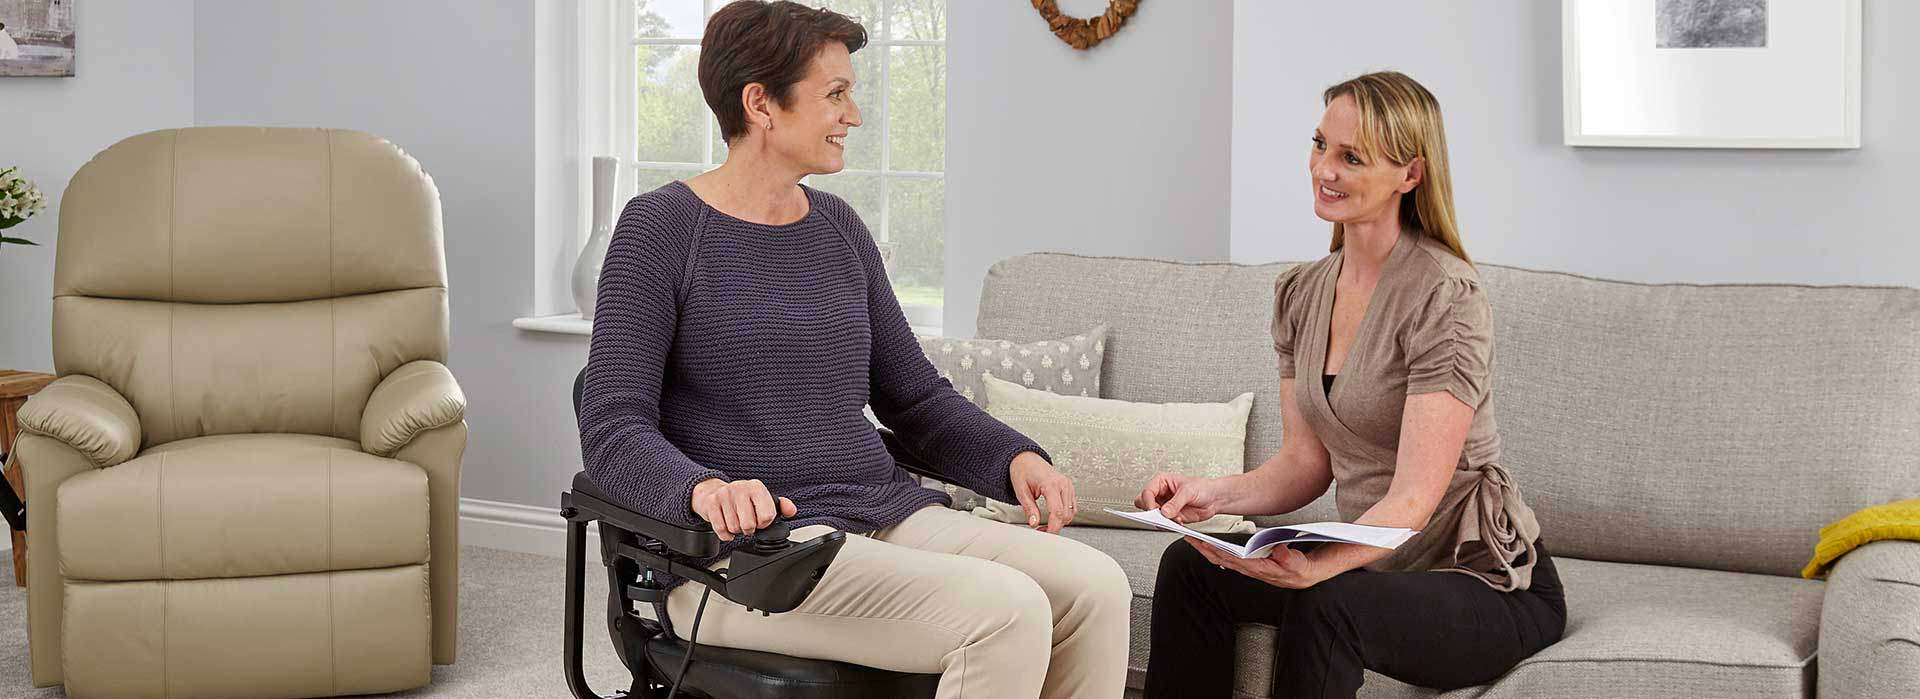 Occupational Therapist Reviews Electric Wheelchairs And